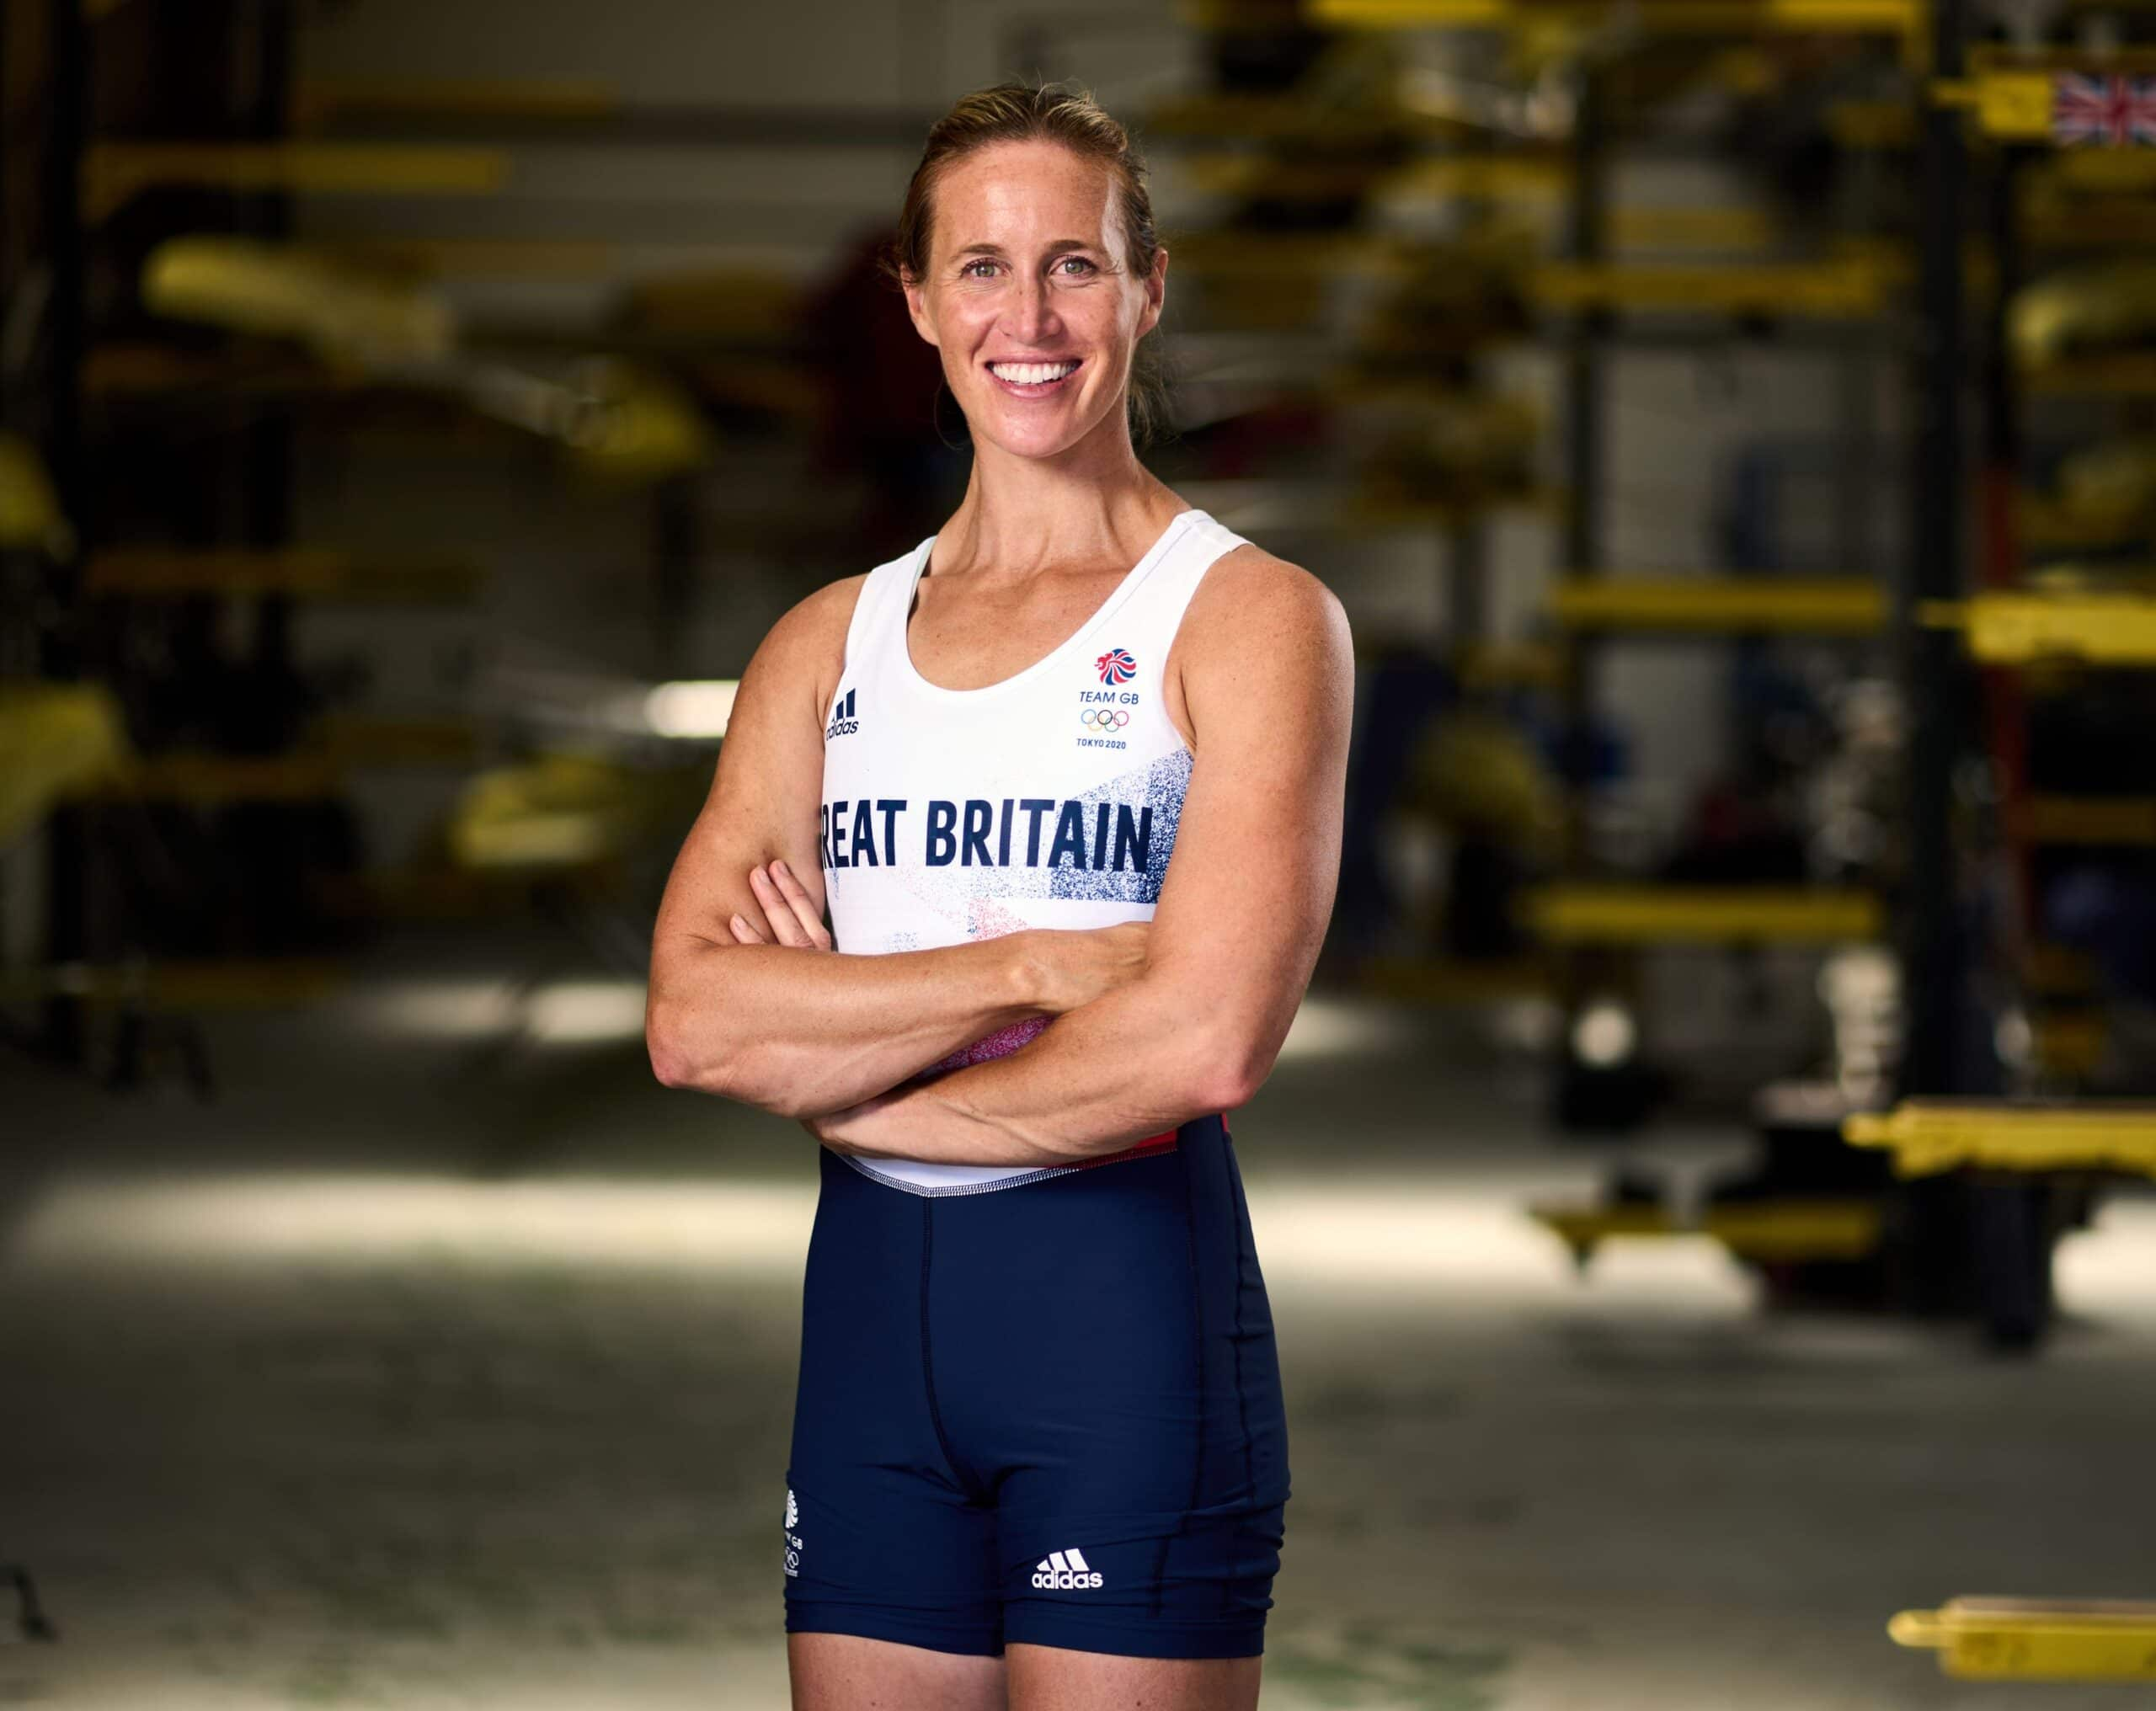 Helen Glover rows for team gb